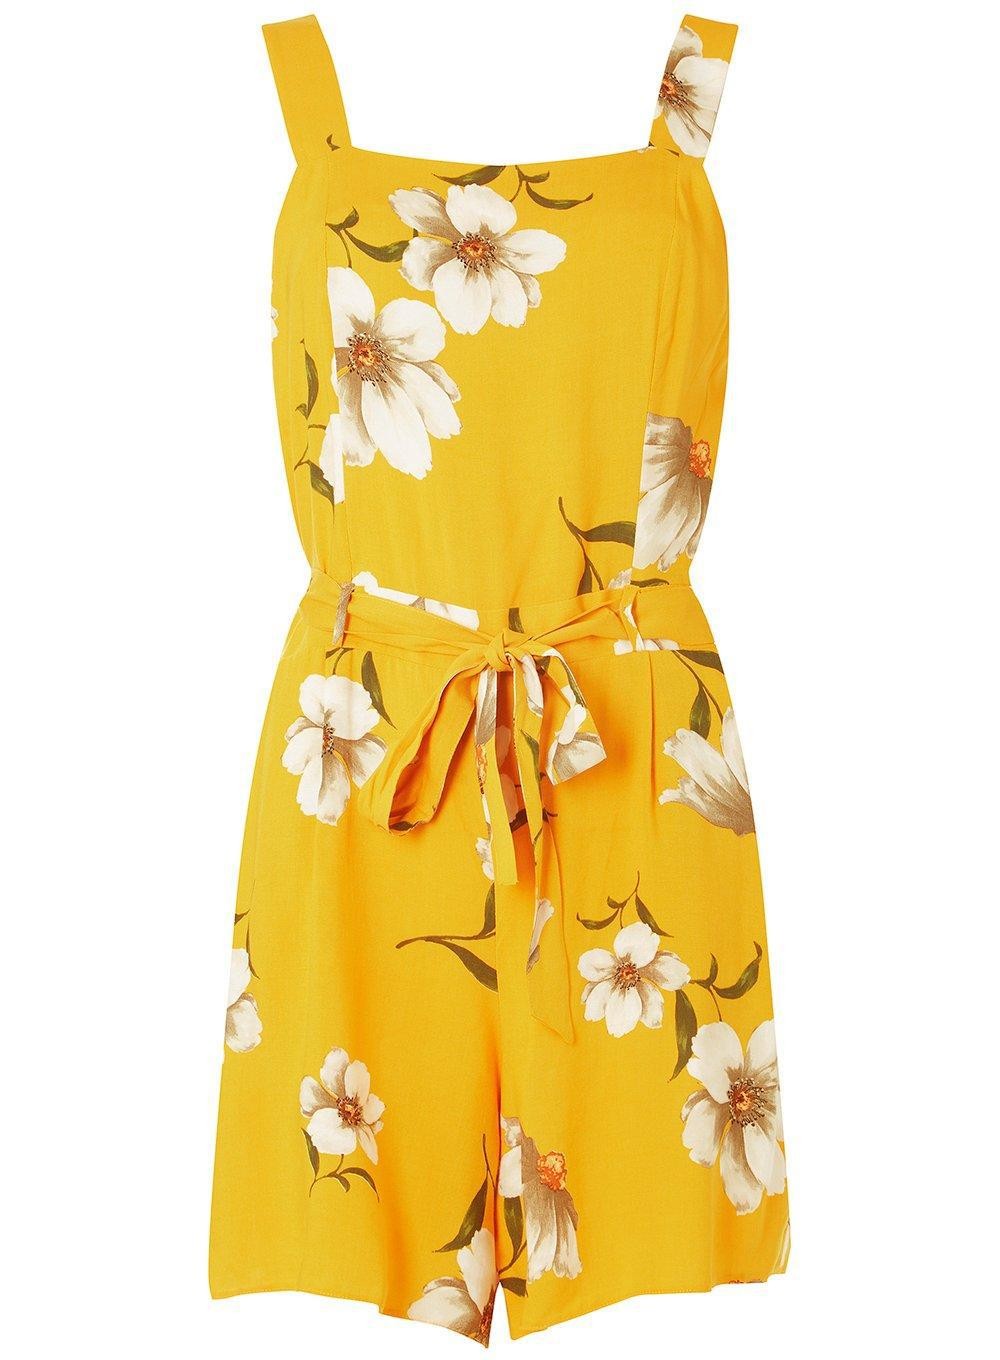 f5ee117976e Lyst - Dorothy Perkins Yellow Floral Square Neck Playsuit in Yellow